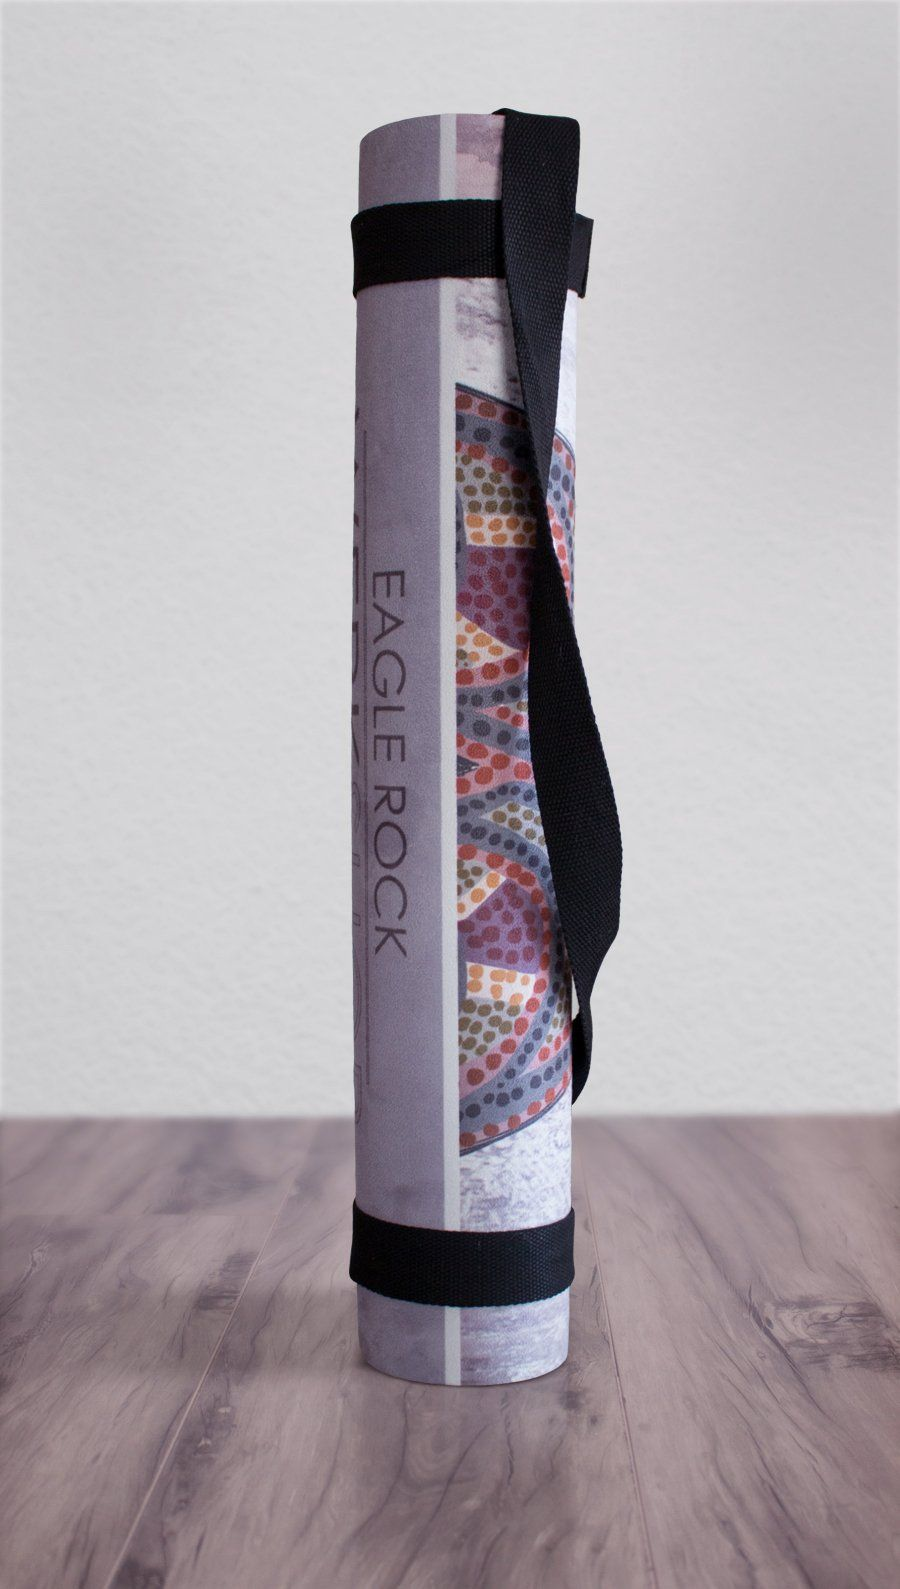 Remix Fitness/Yoga Mat